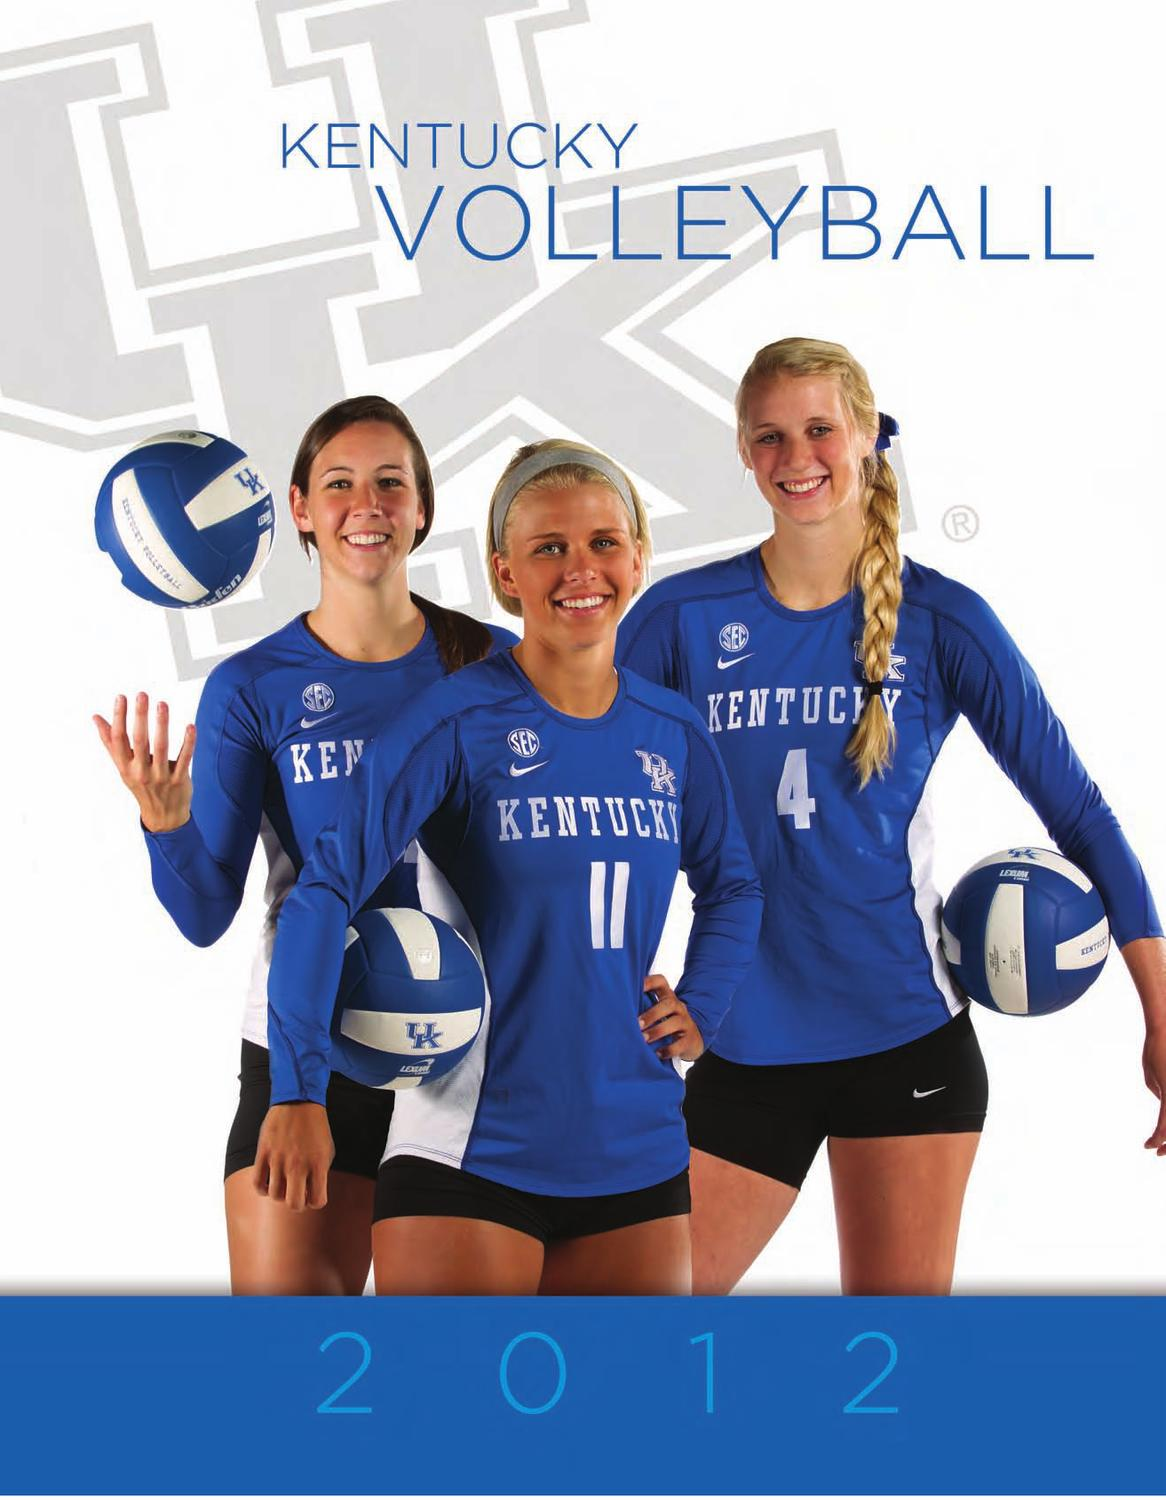 2012 Kentucky Volleyball Fact Book By University Of Kentucky Athletics Issuu